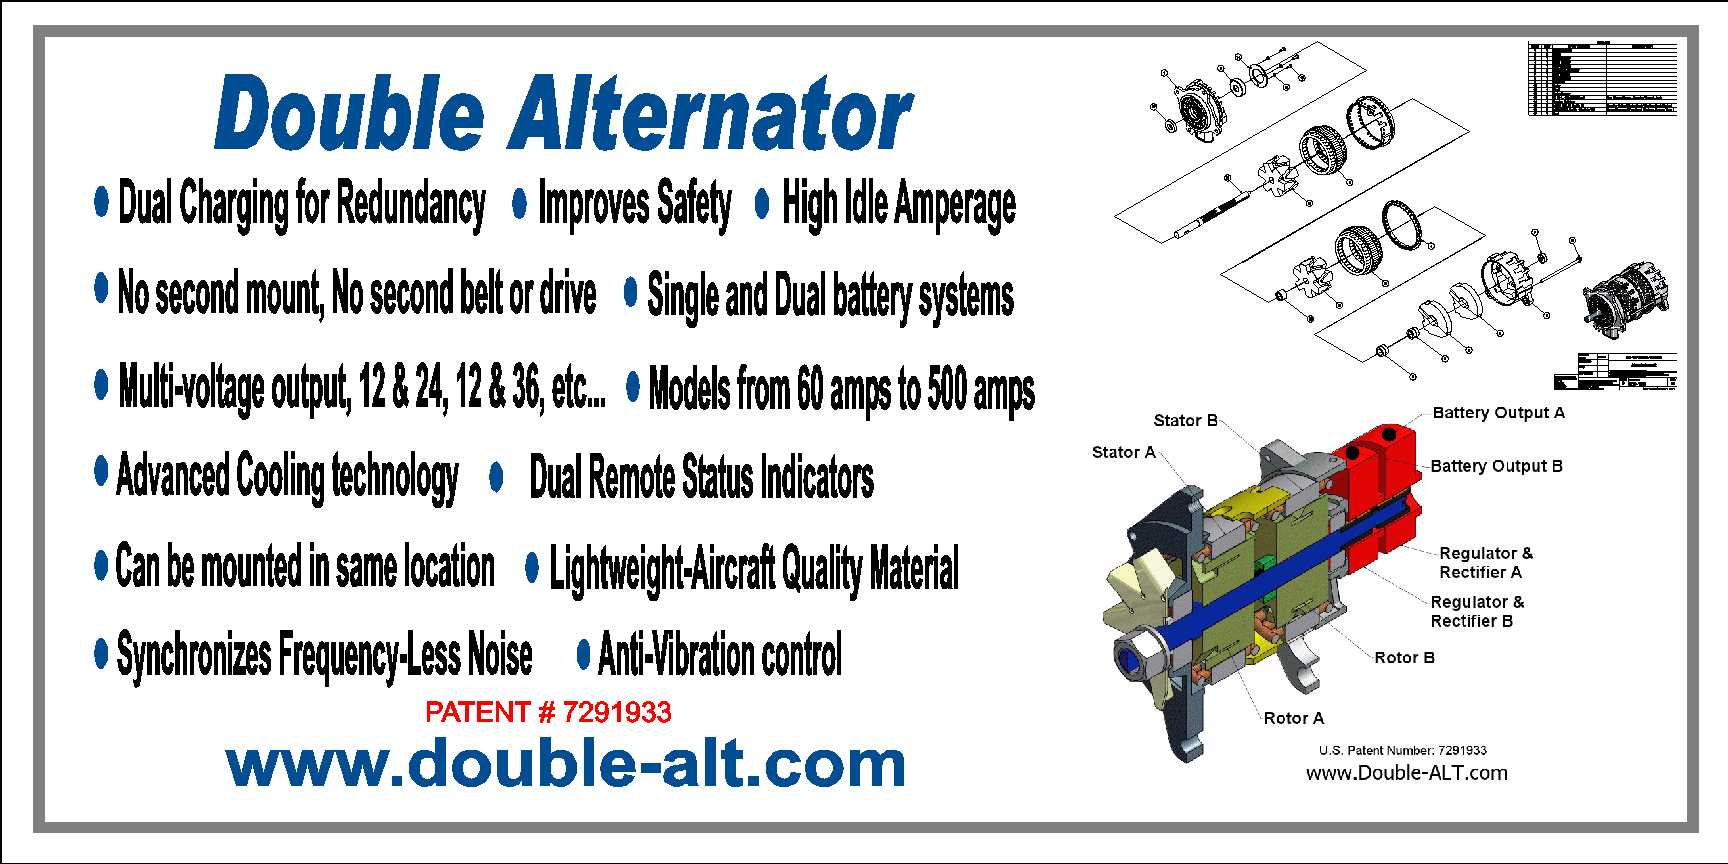 Double Alternator Information and Advantages